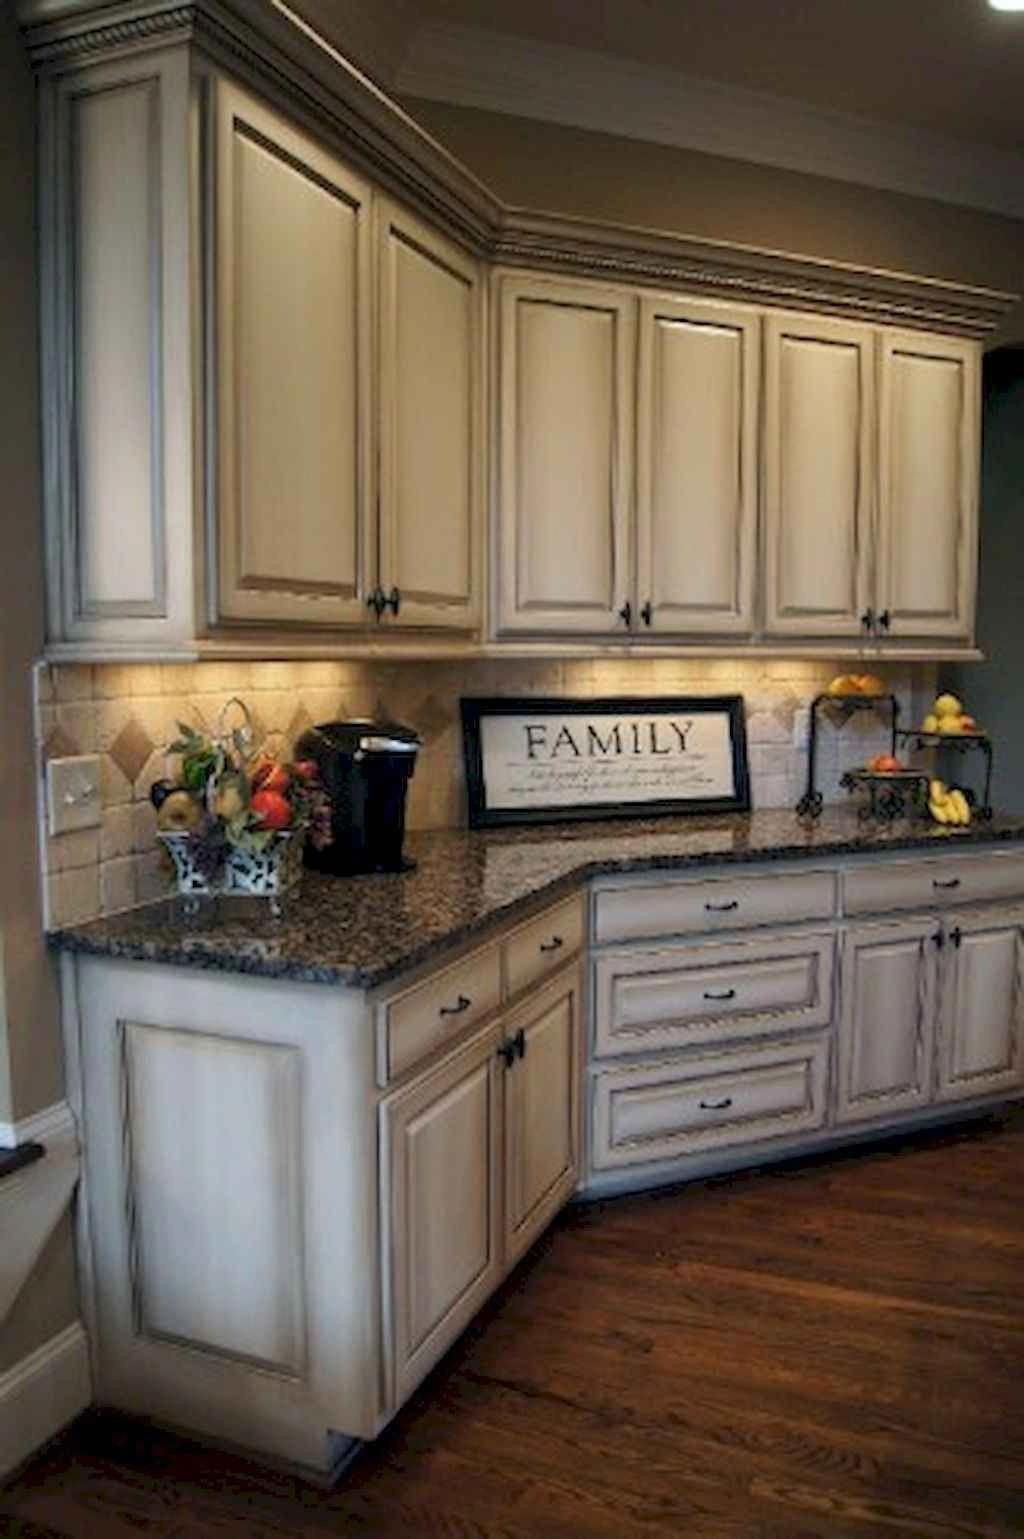 Antique White Kitchen Rustic Kitchen Cabinets Home Kitchens Antique White Kitch In 2020 Glazed Kitchen Cabinets Kitchen Cabinet Design Rustic Kitchen Cabinets